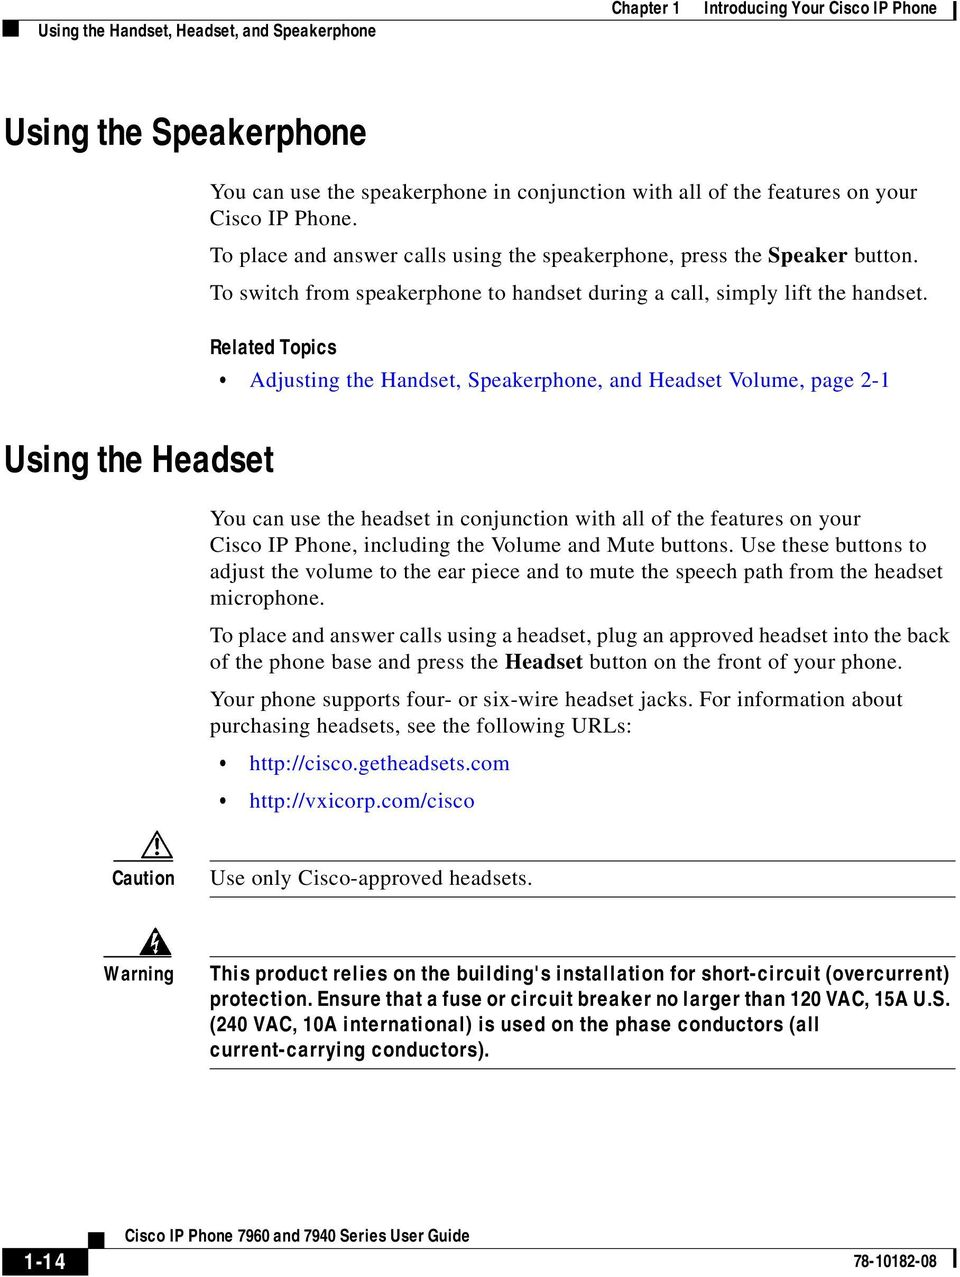 Adjusting the Handset, Speakerphone, and Headset Volume, page 2-1 Using the Headset You can use the headset in conjunction with all of the features on your Cisco IP Phone, including the Volume and